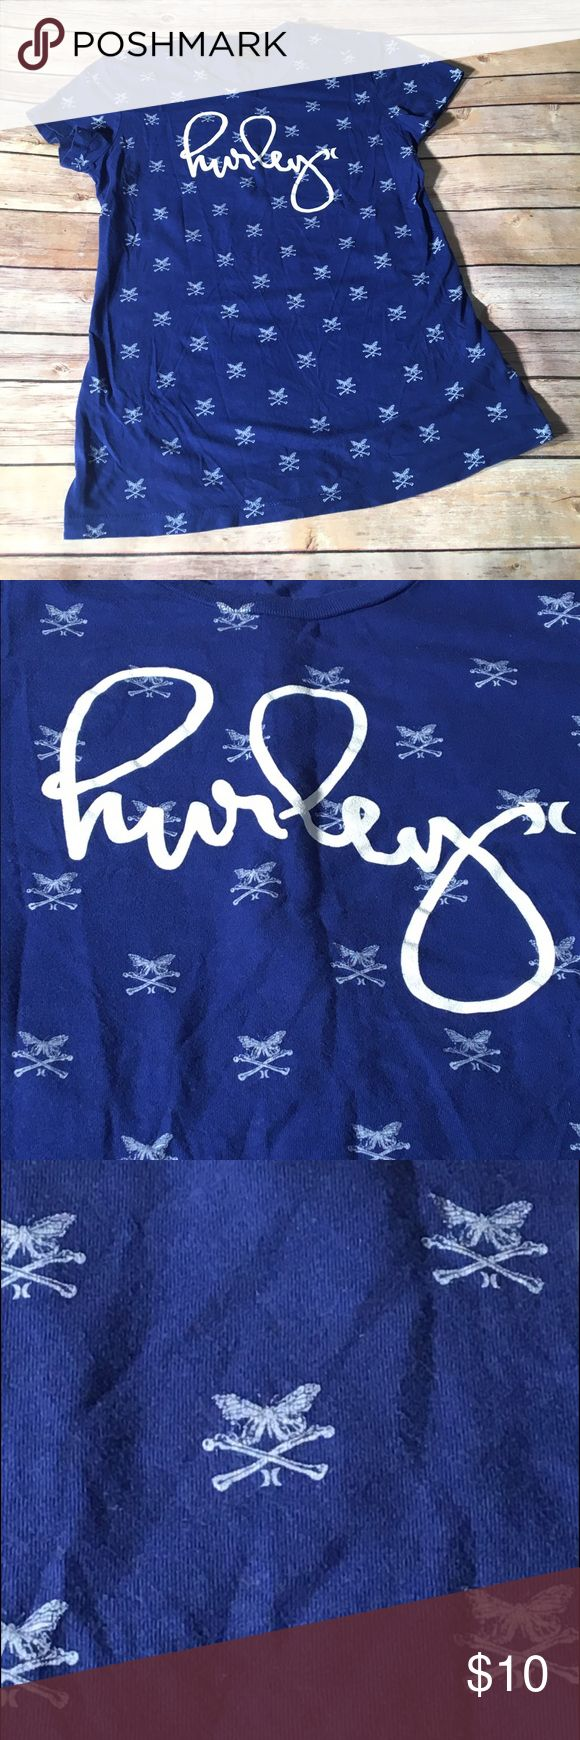 Hurley Womens Blue Graphic T-Shirt Size Large Hurley Womens Cursive Logo On Graphic T-Shirt  Has Hurley wrote in White Cursive Writing on the front along with Butterfly Crossbones Color: Royal Blue   Size:  Large 100% Cotton  Made in Mexico Excellent Used Condition  Code: 17AL03 Hurley Tops Tees - Short Sleeve